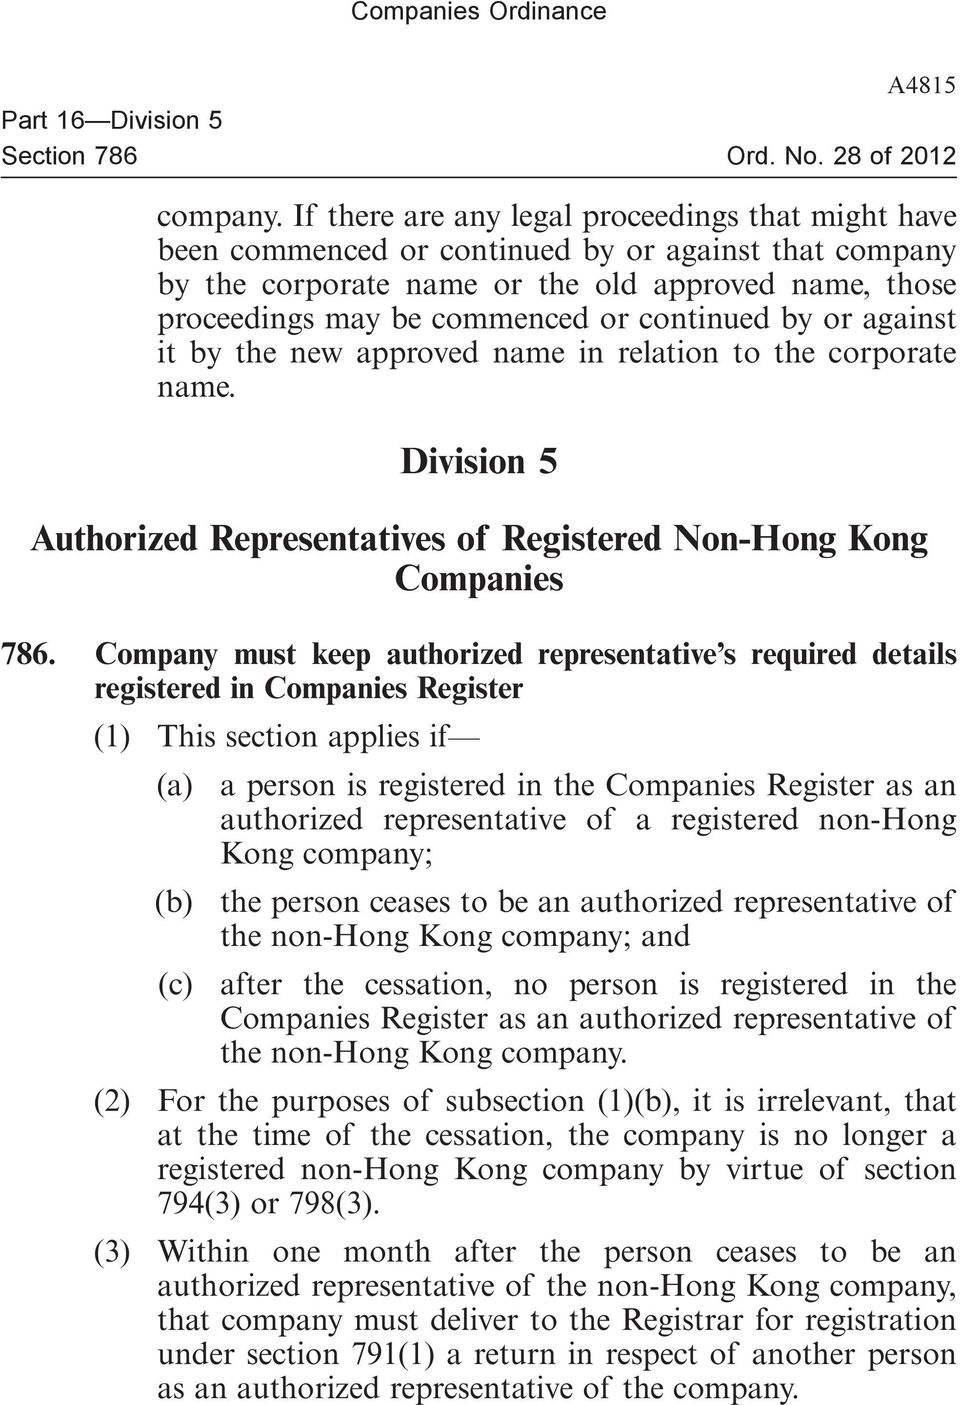 continued by or against it by the new approved name in relation to the corporate name. Division 5 Authorized Representatives of Registered Non-Hong Kong Companies 786.